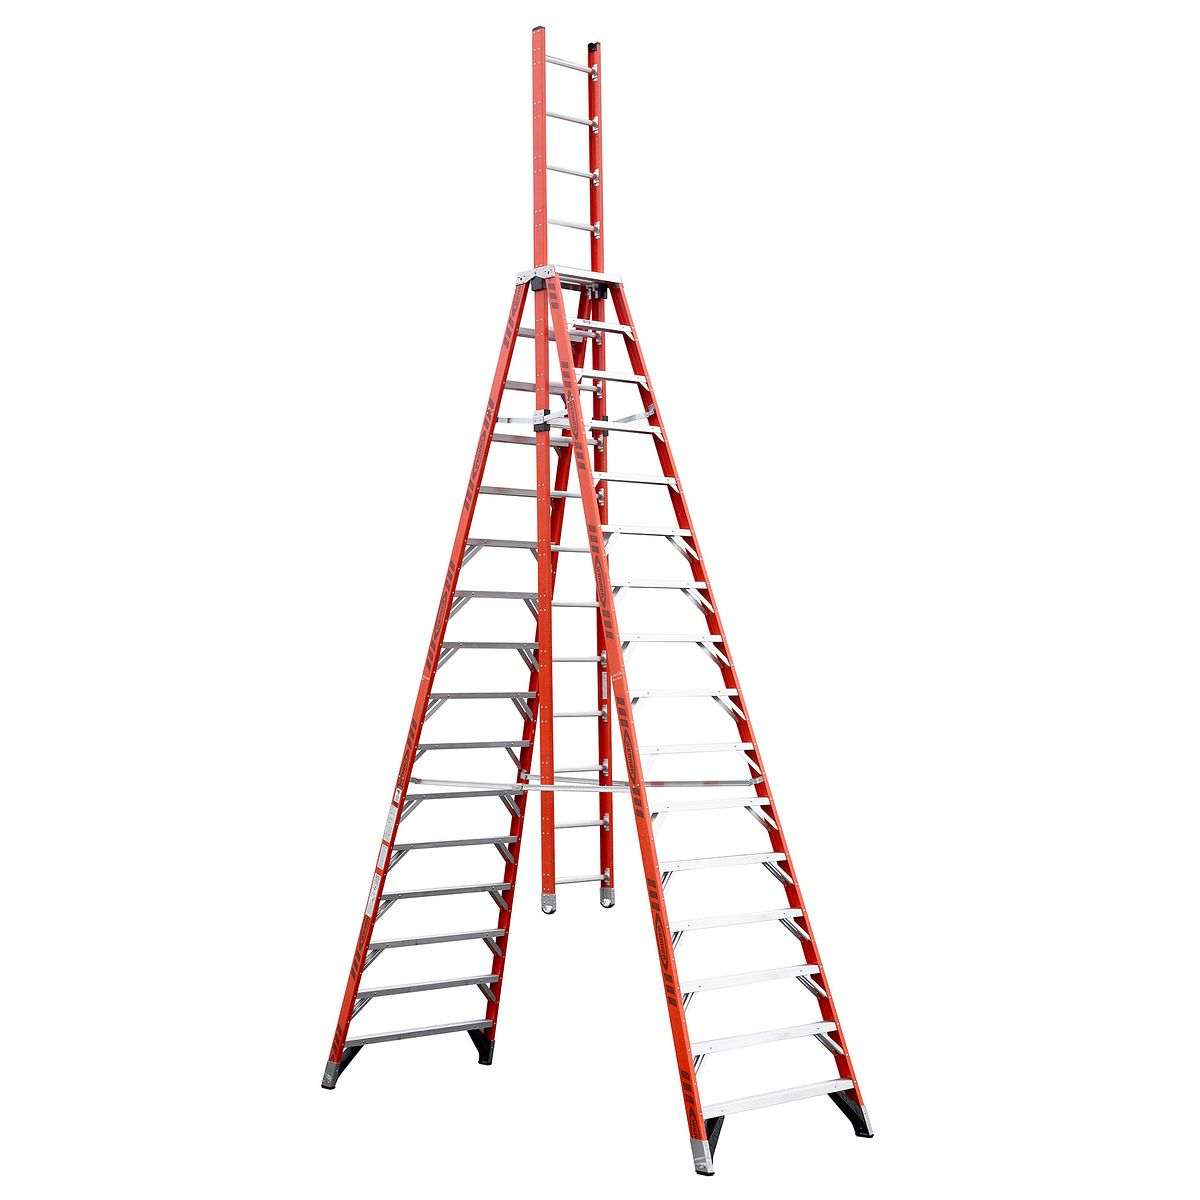 e7416 - Wooden A Frame Ladder